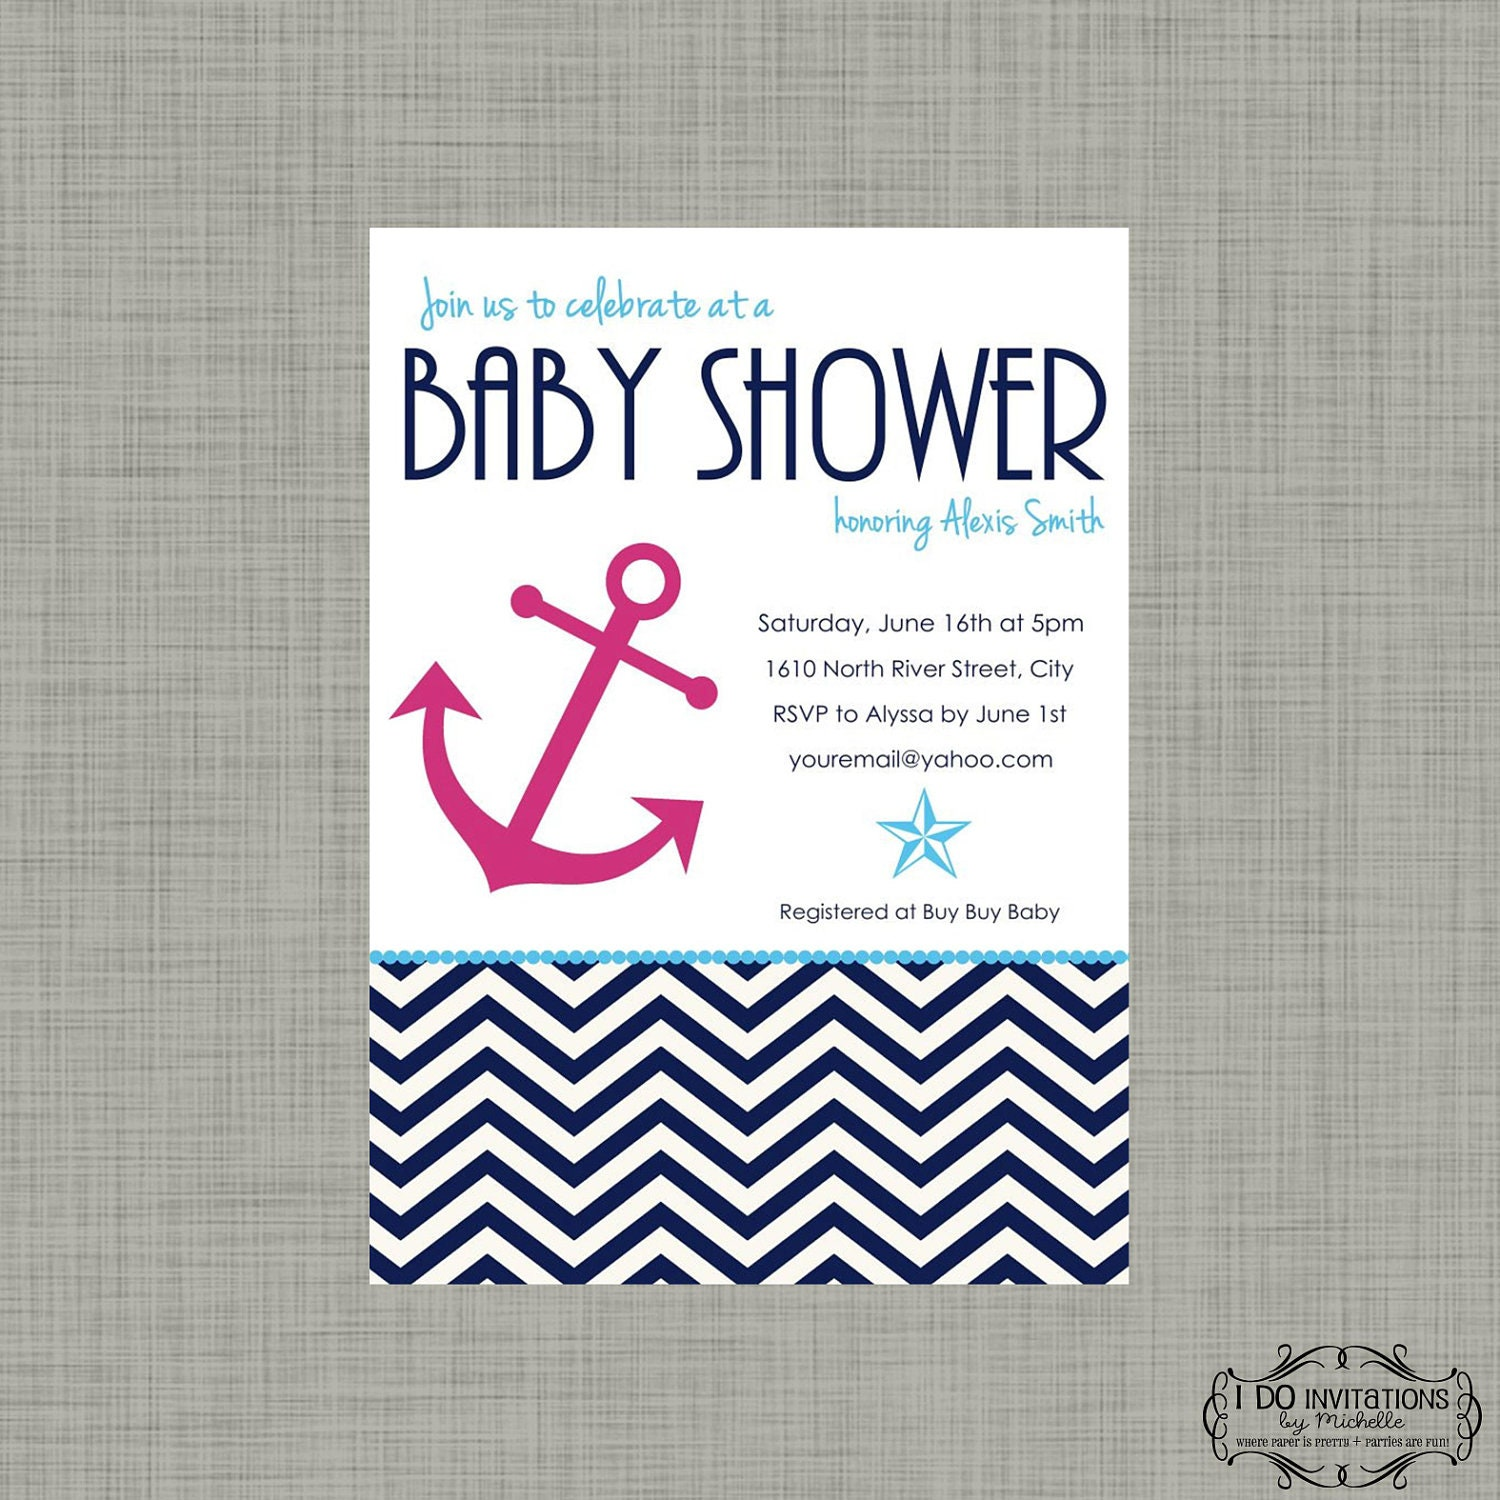 Sailor Baby Shower Invitations was perfect invitation design